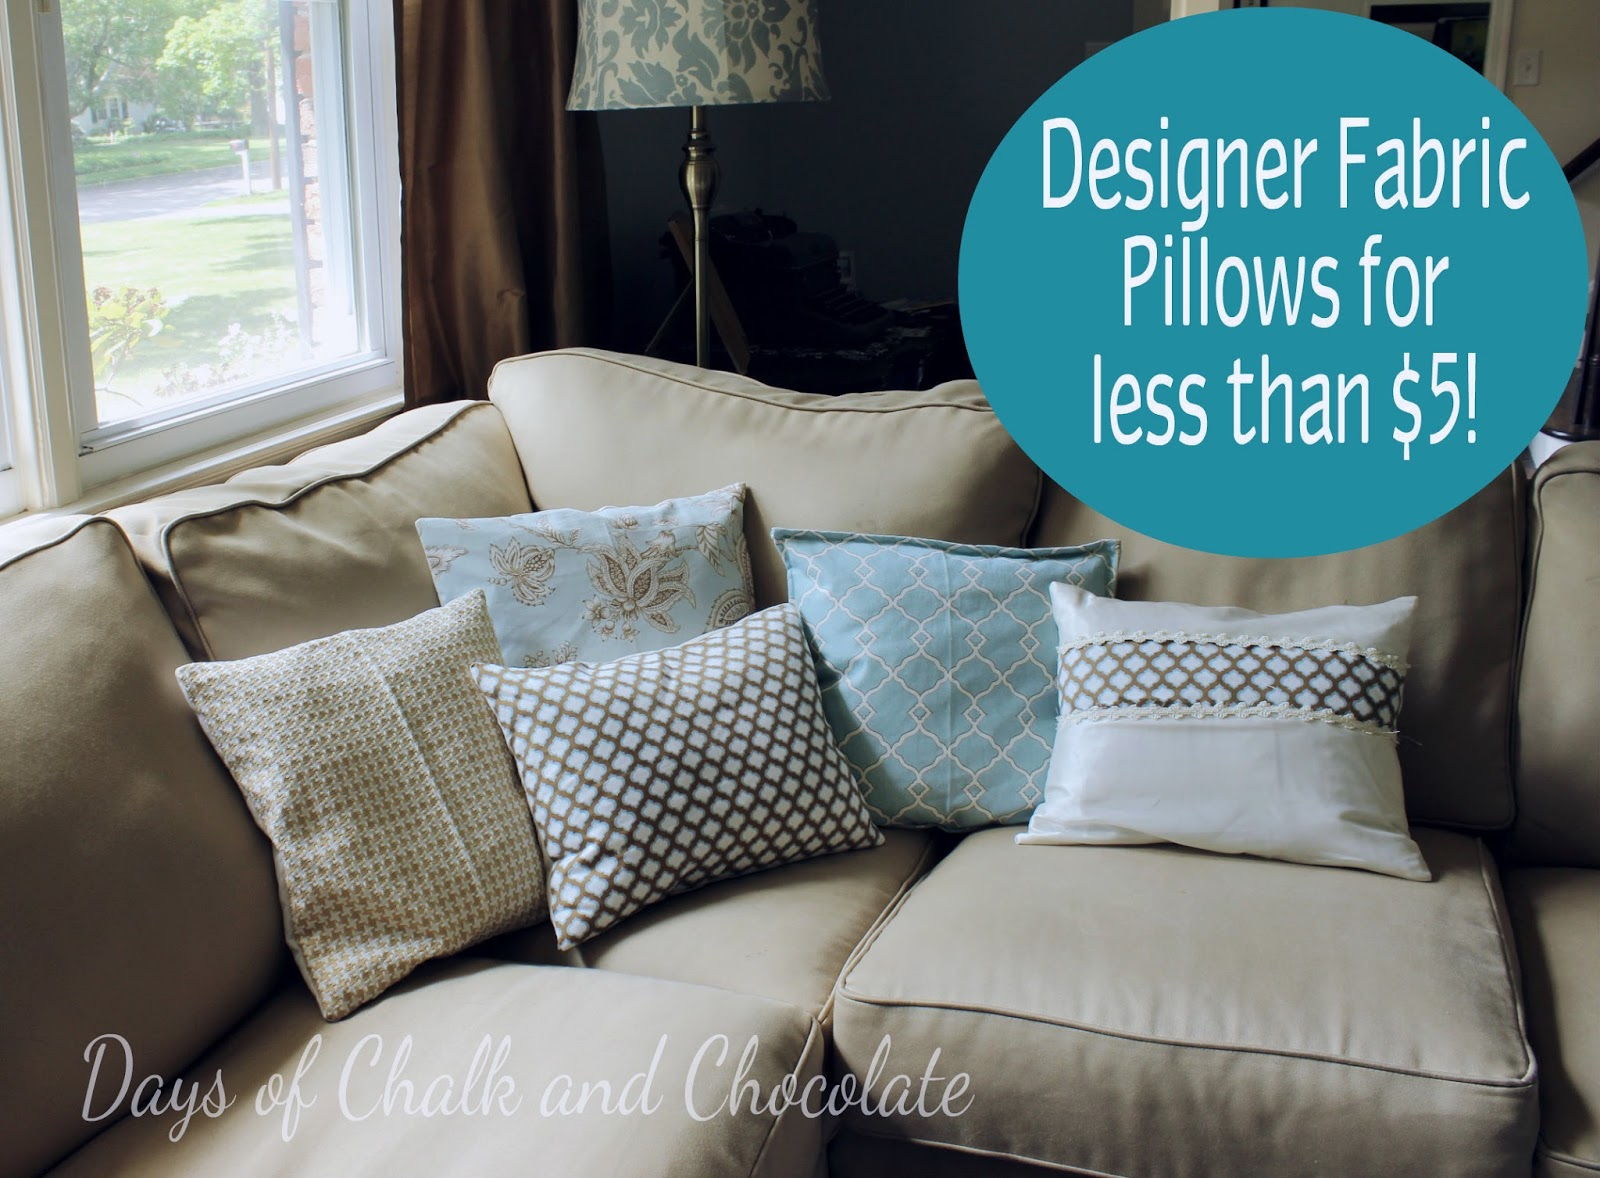 how i get designer fabric pillows for 5 or less days of With designer pillows for less